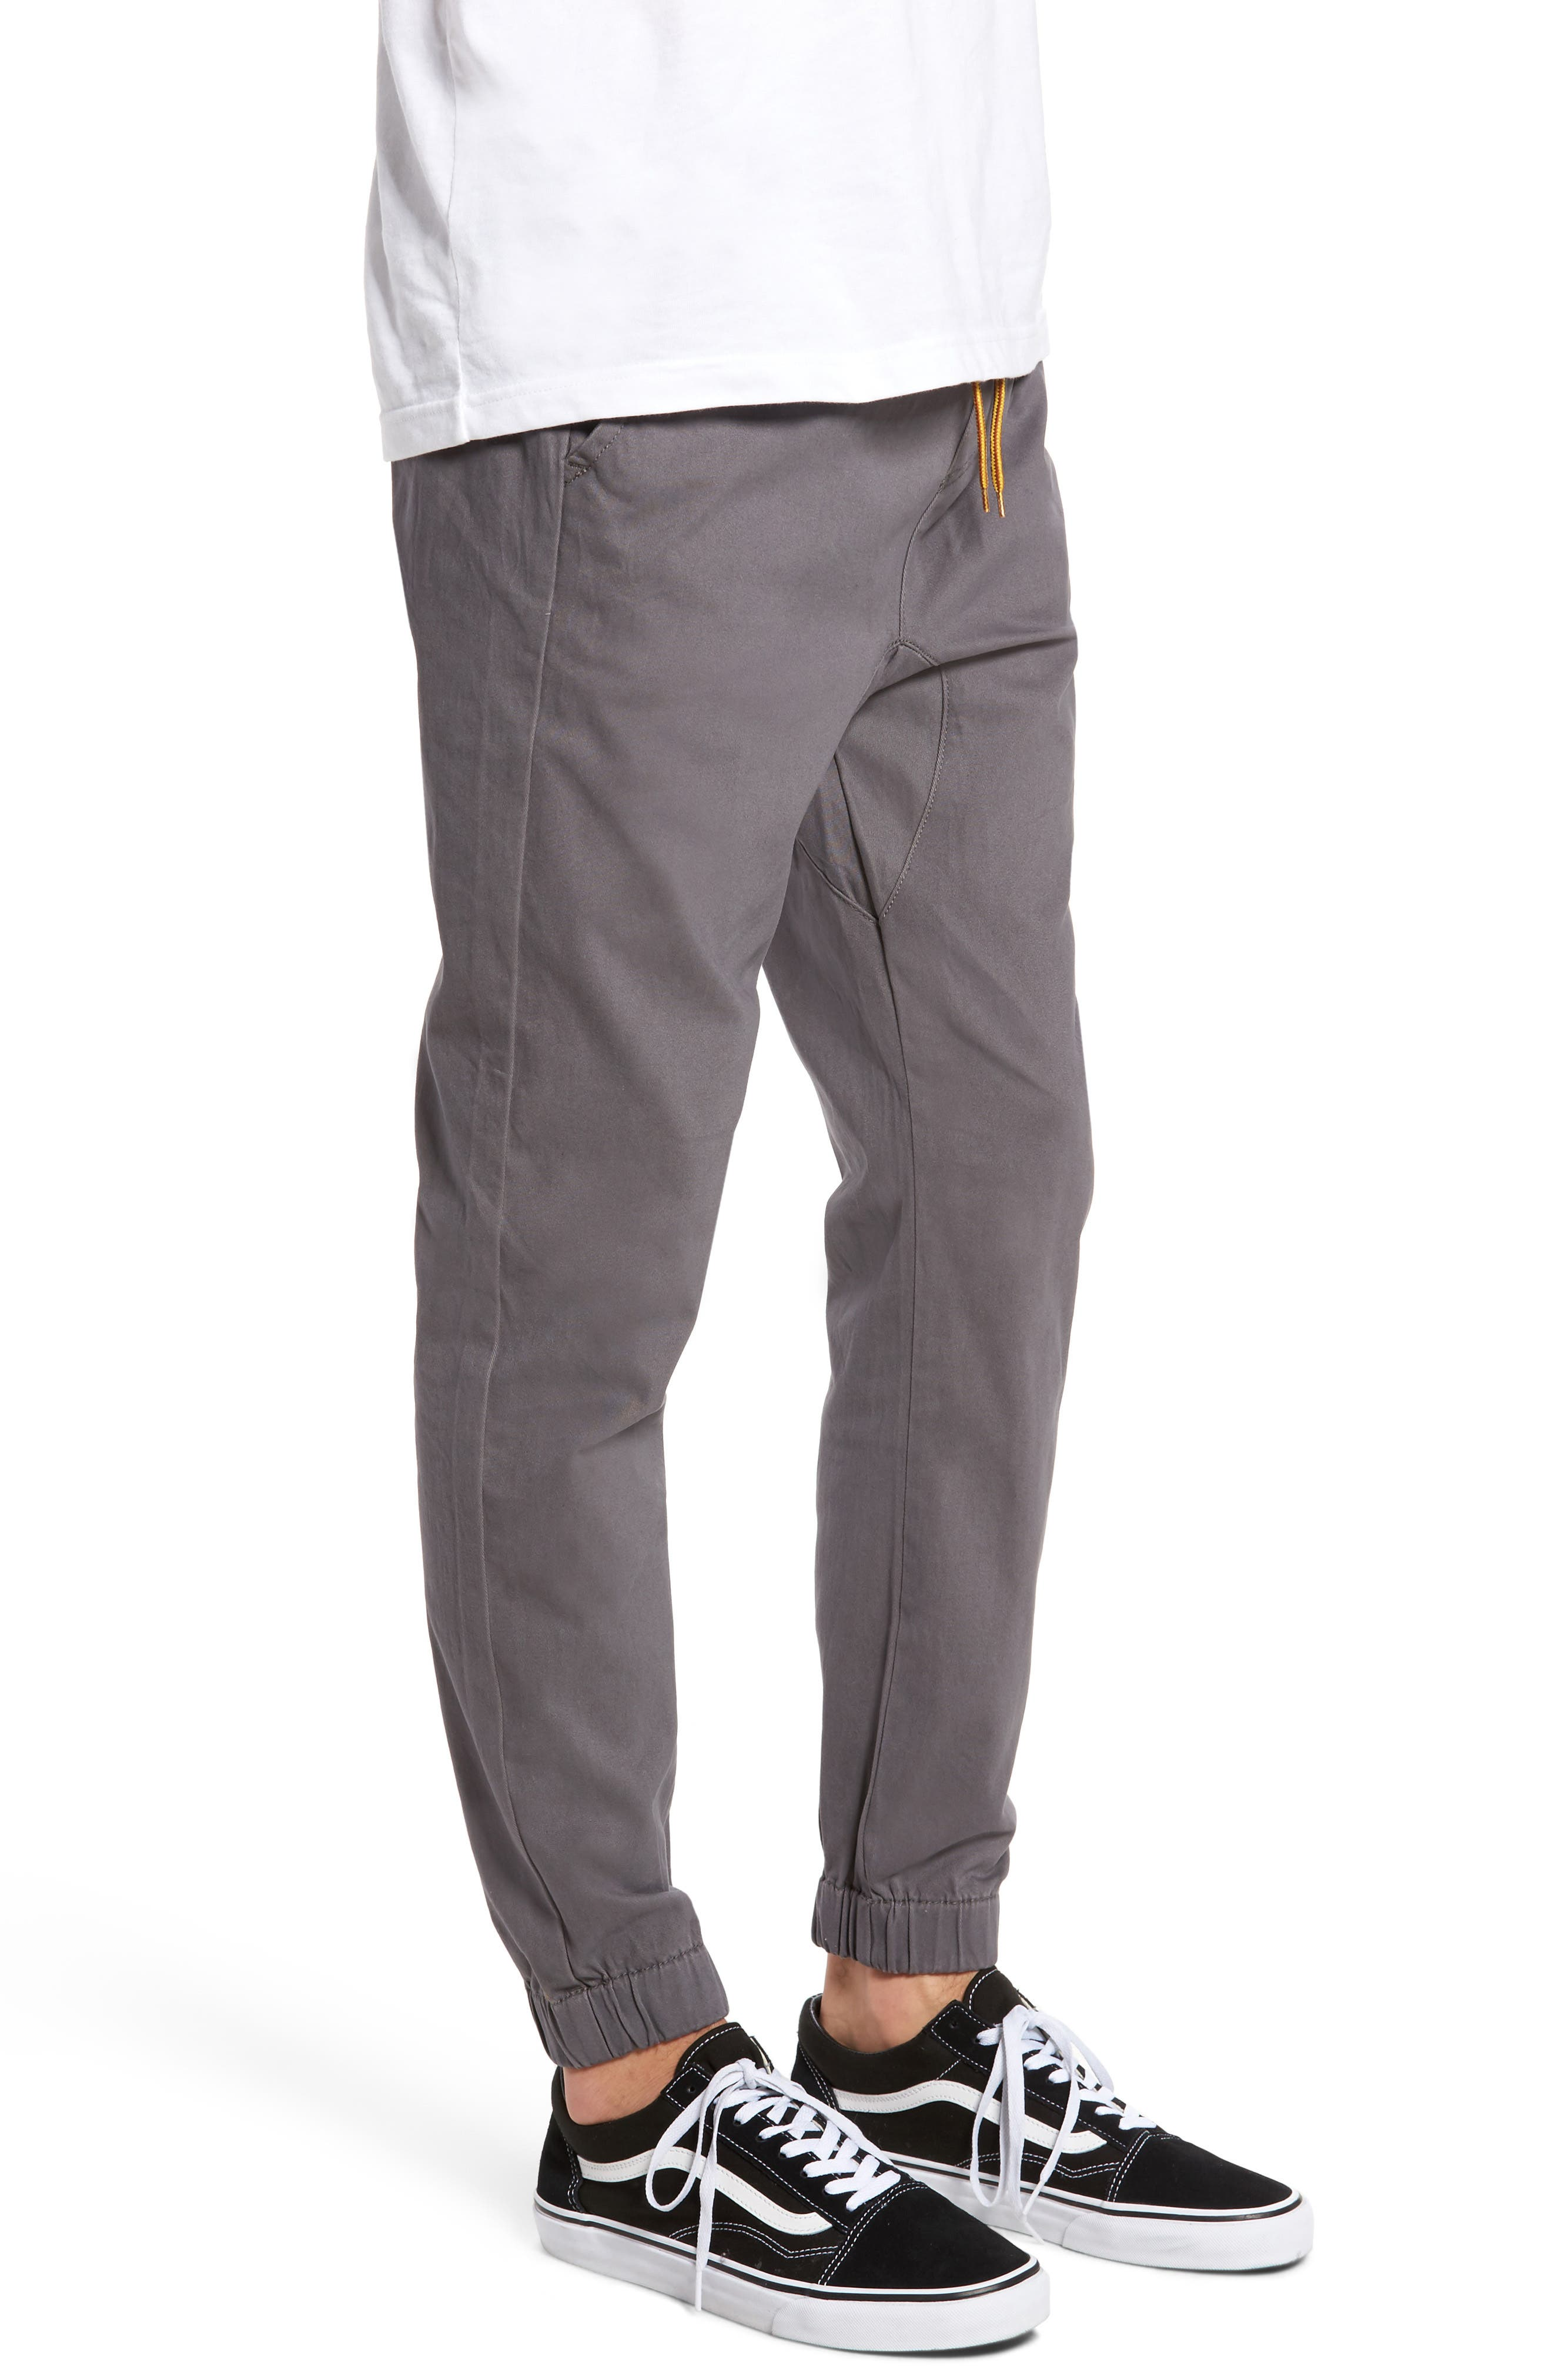 Weekend Jogger Pants,                             Alternate thumbnail 18, color,